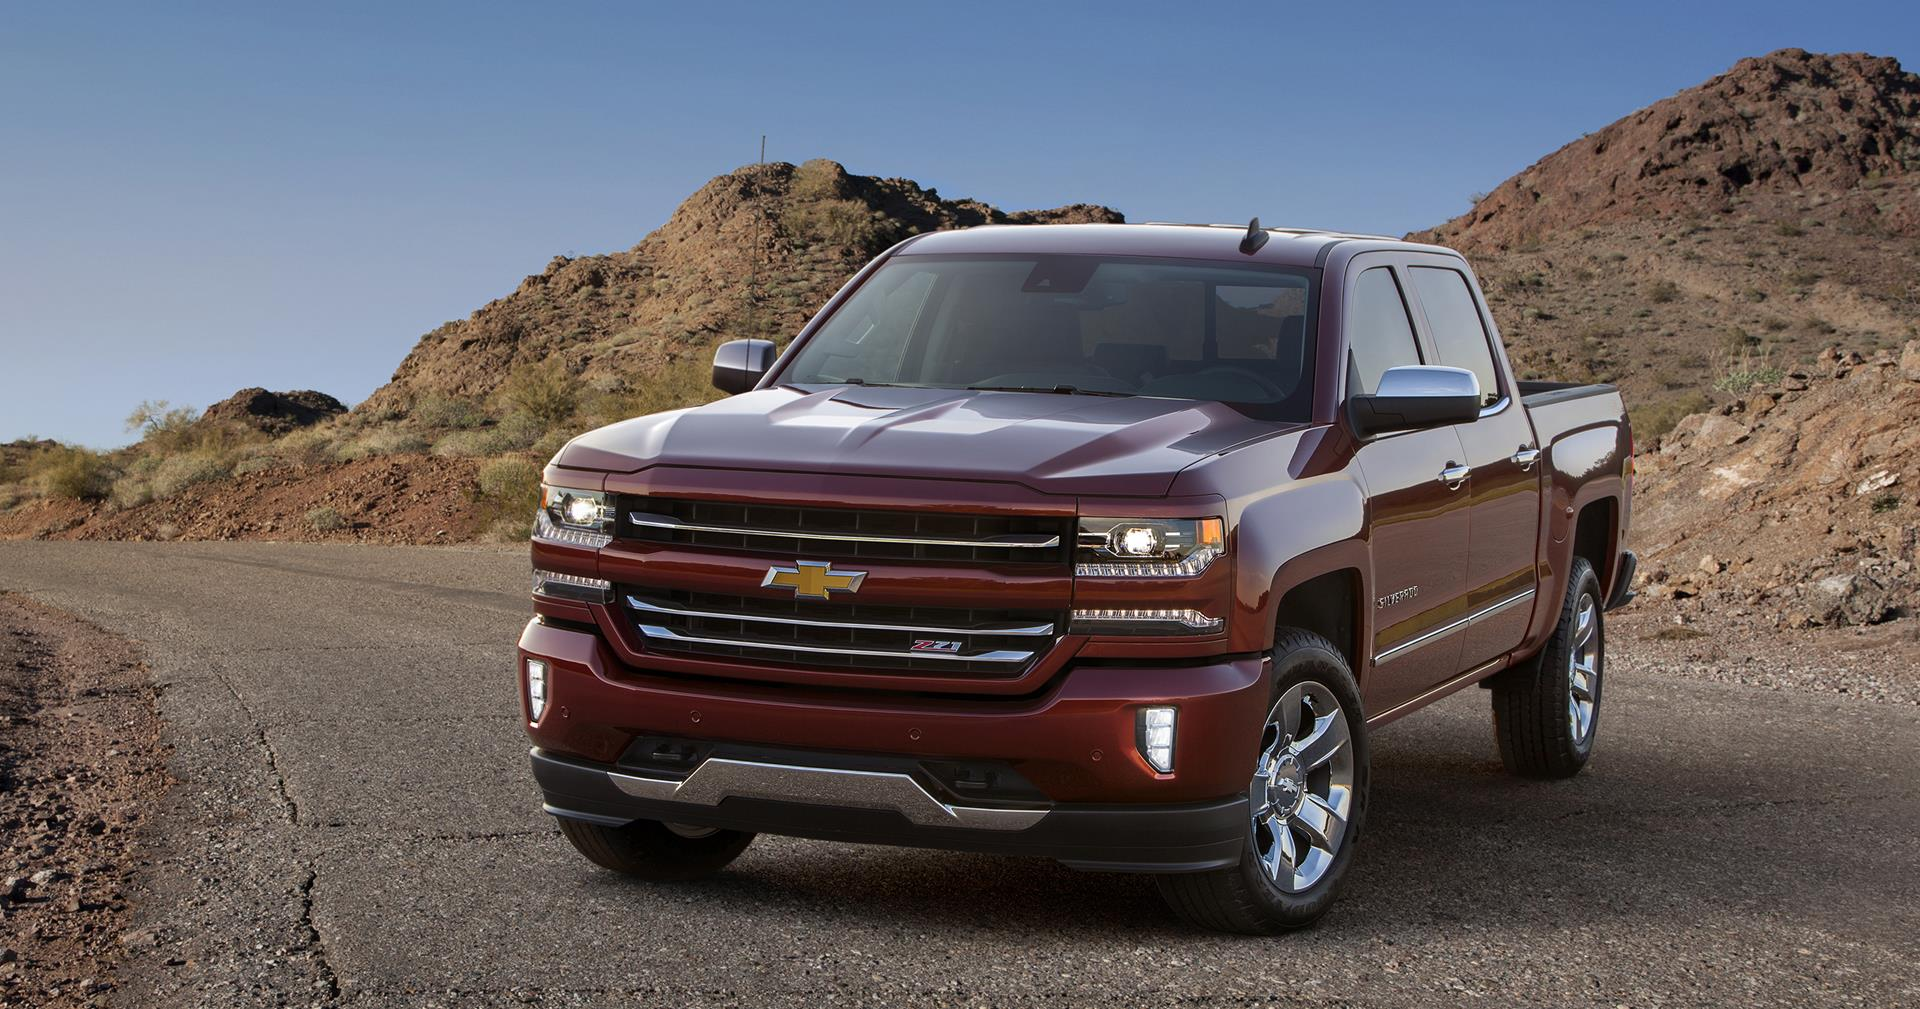 Chevy Silverado Special Edition >> 2016 Chevrolet Silverado News and Information - conceptcarz.com